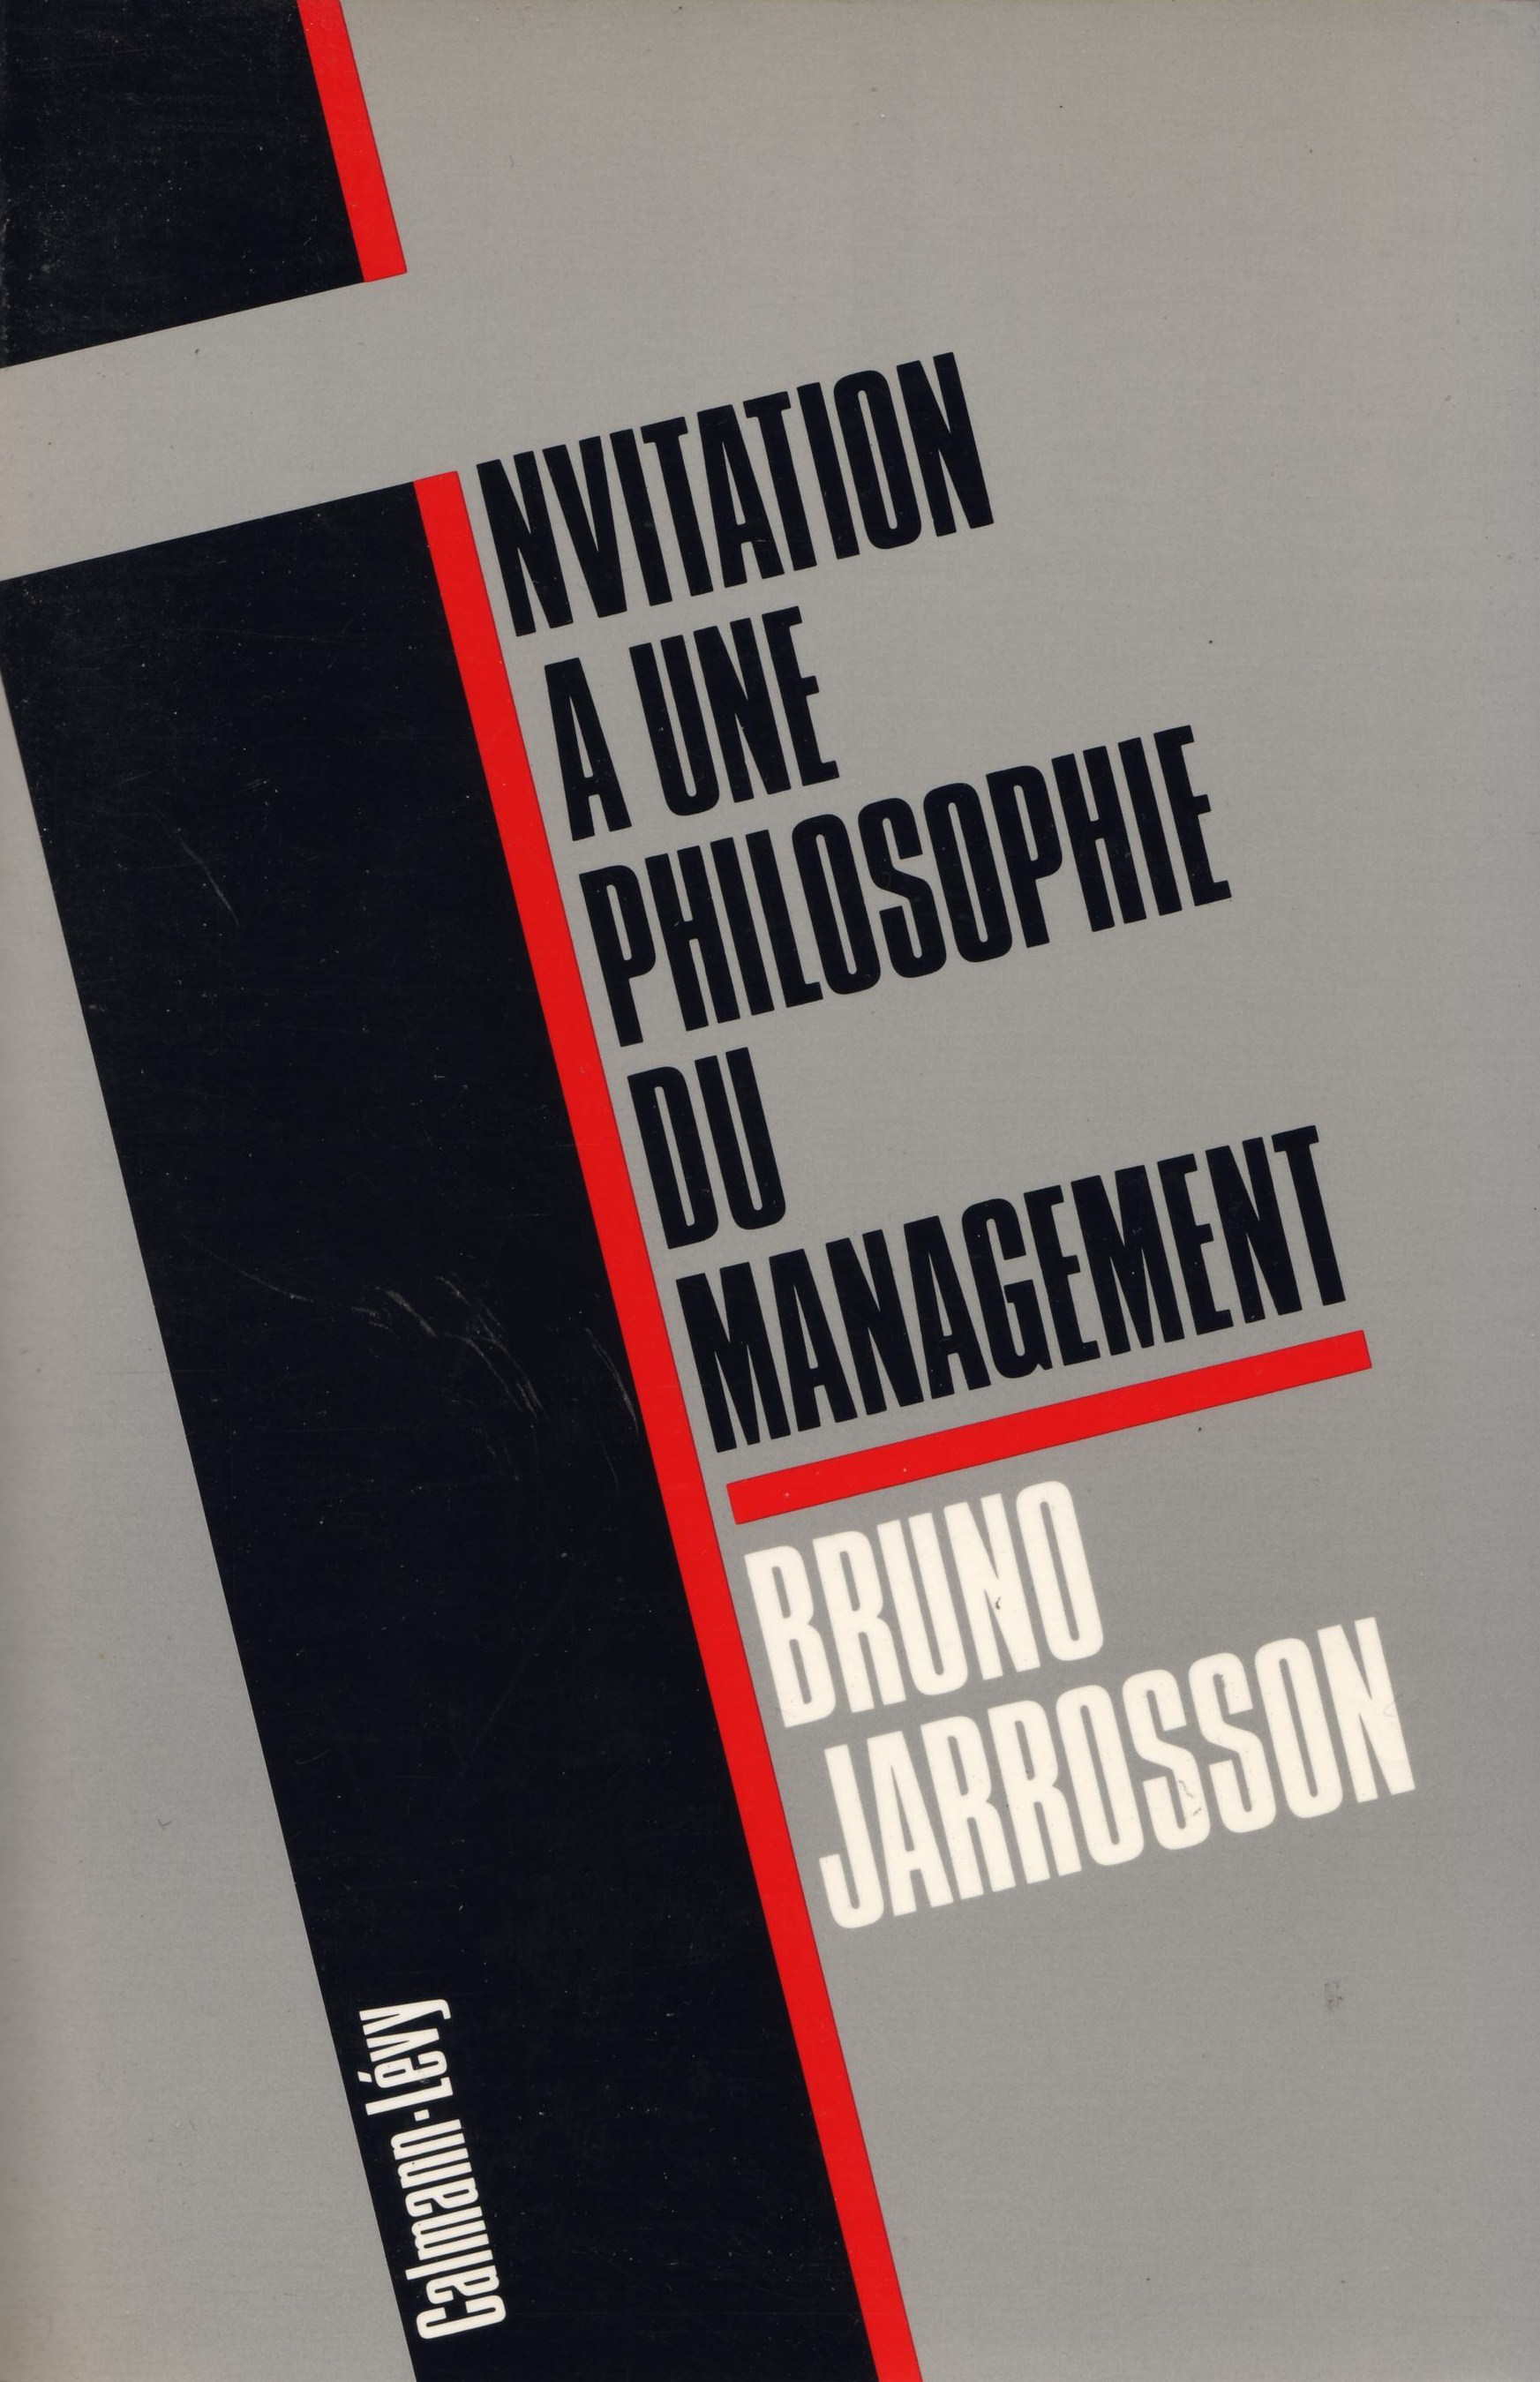 Invitation-à-une-philosopie-du-m